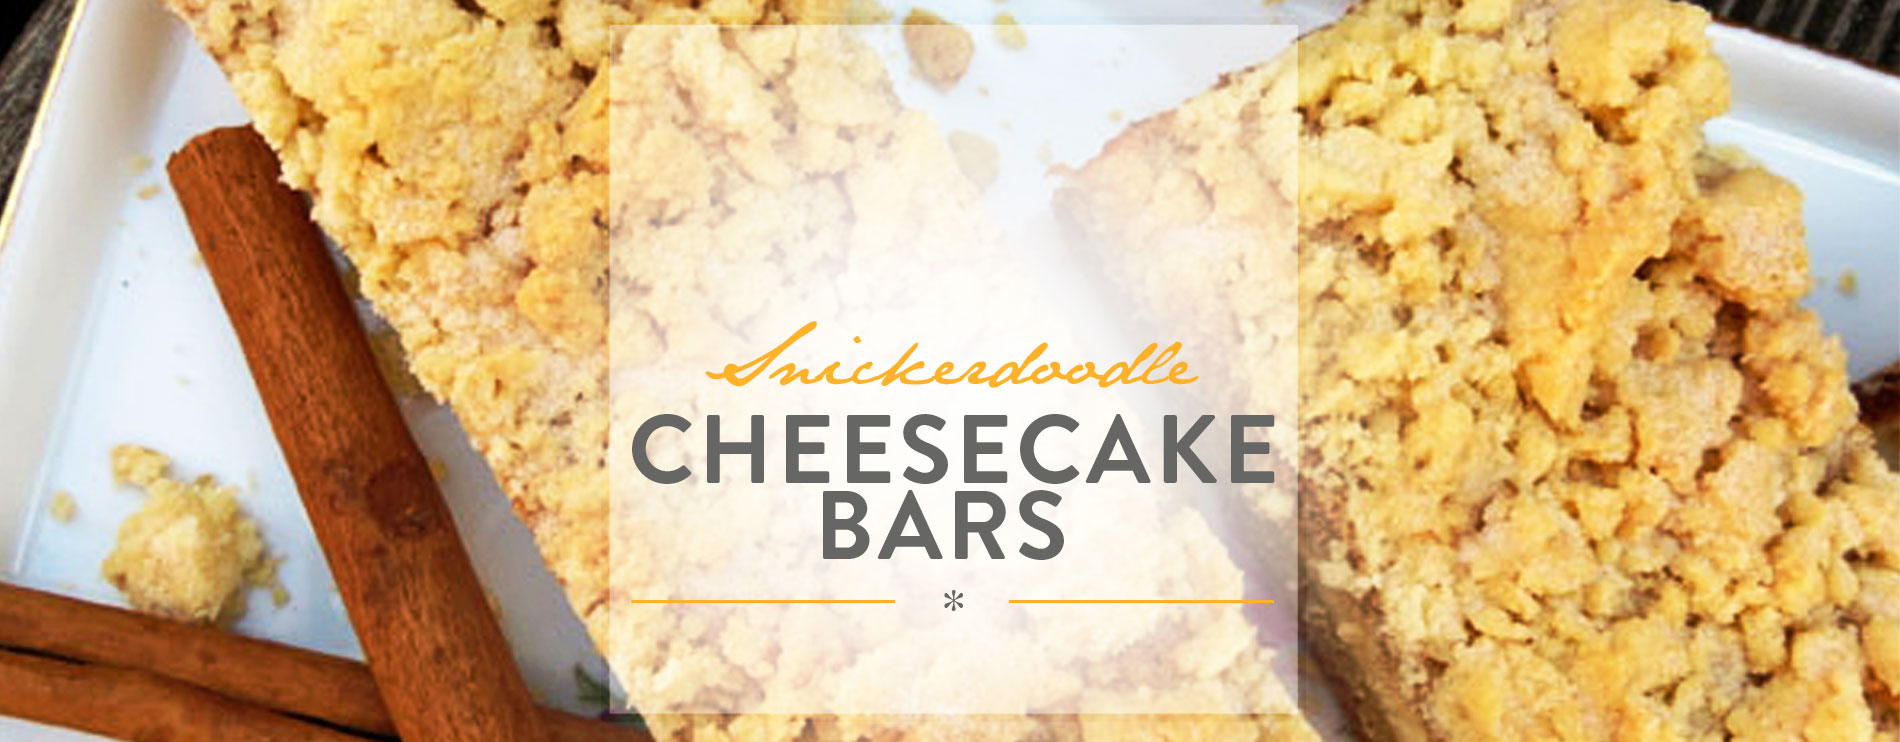 Header Snickerdoodle Cheesecake Bars